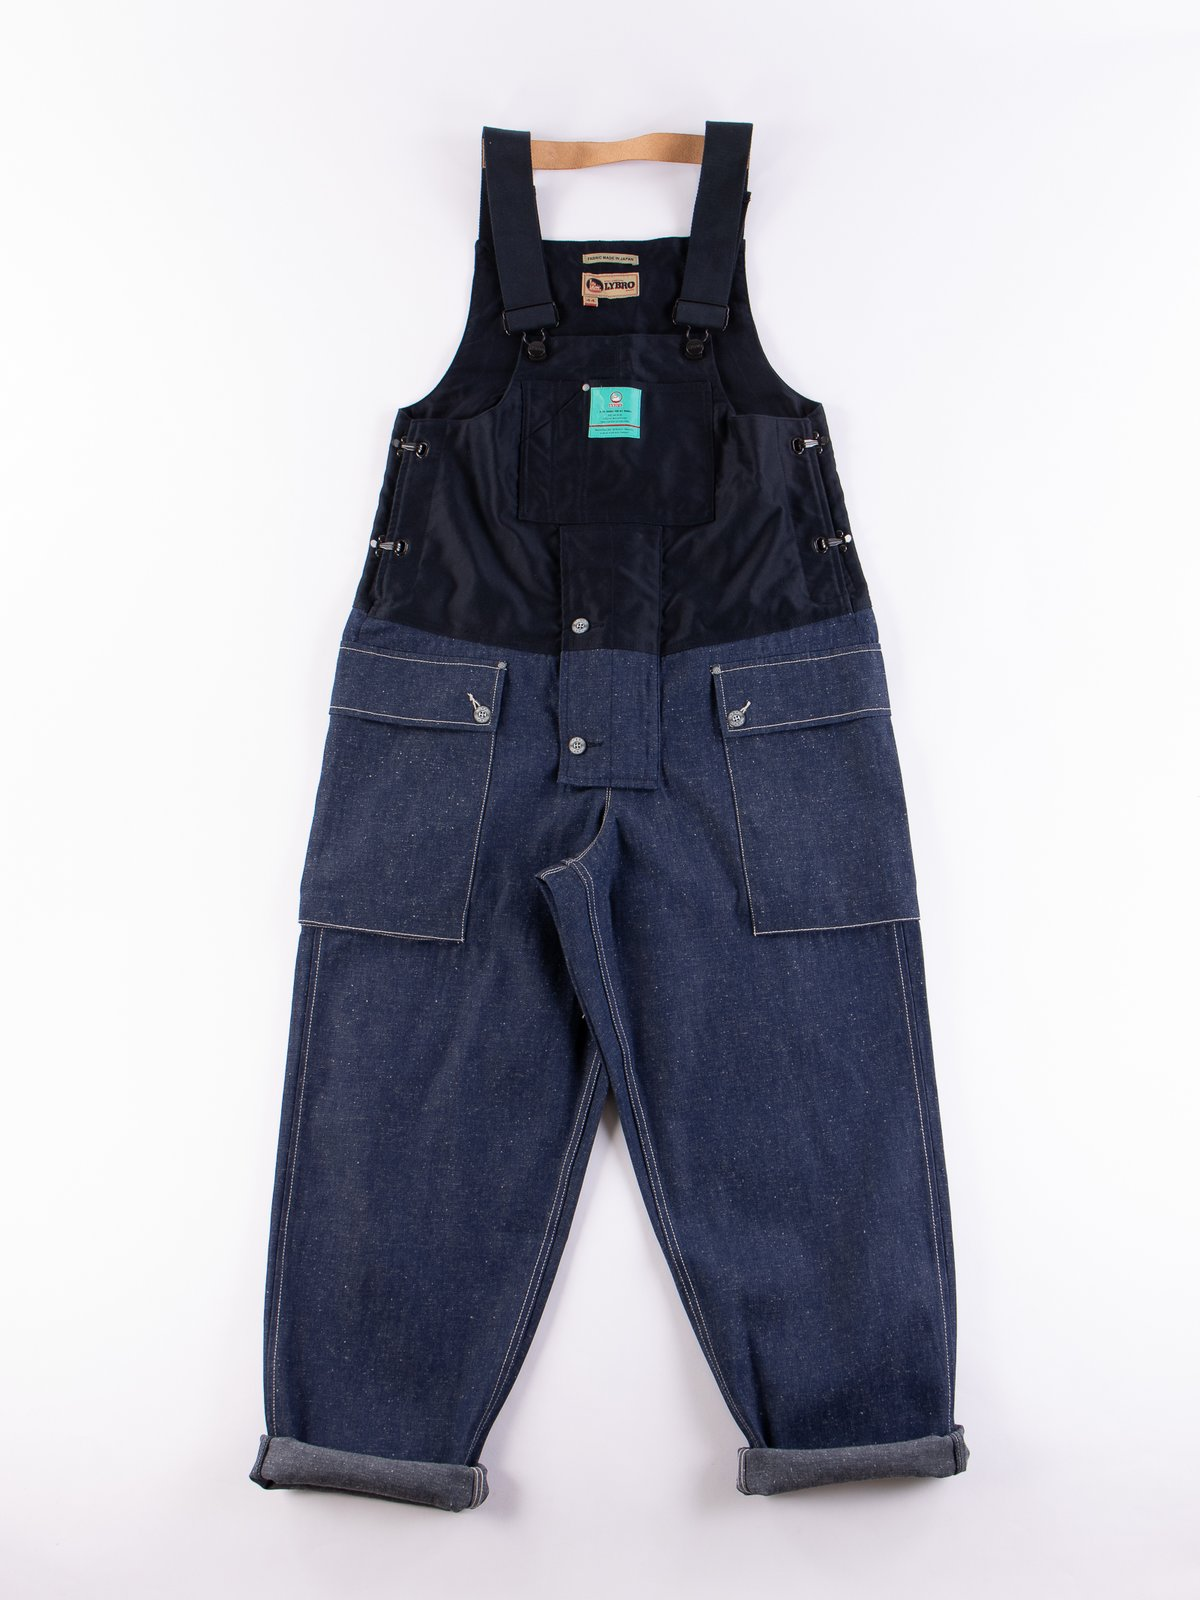 Lybro Split Denim/Navy Sateen Naval Dungaree - Image 1